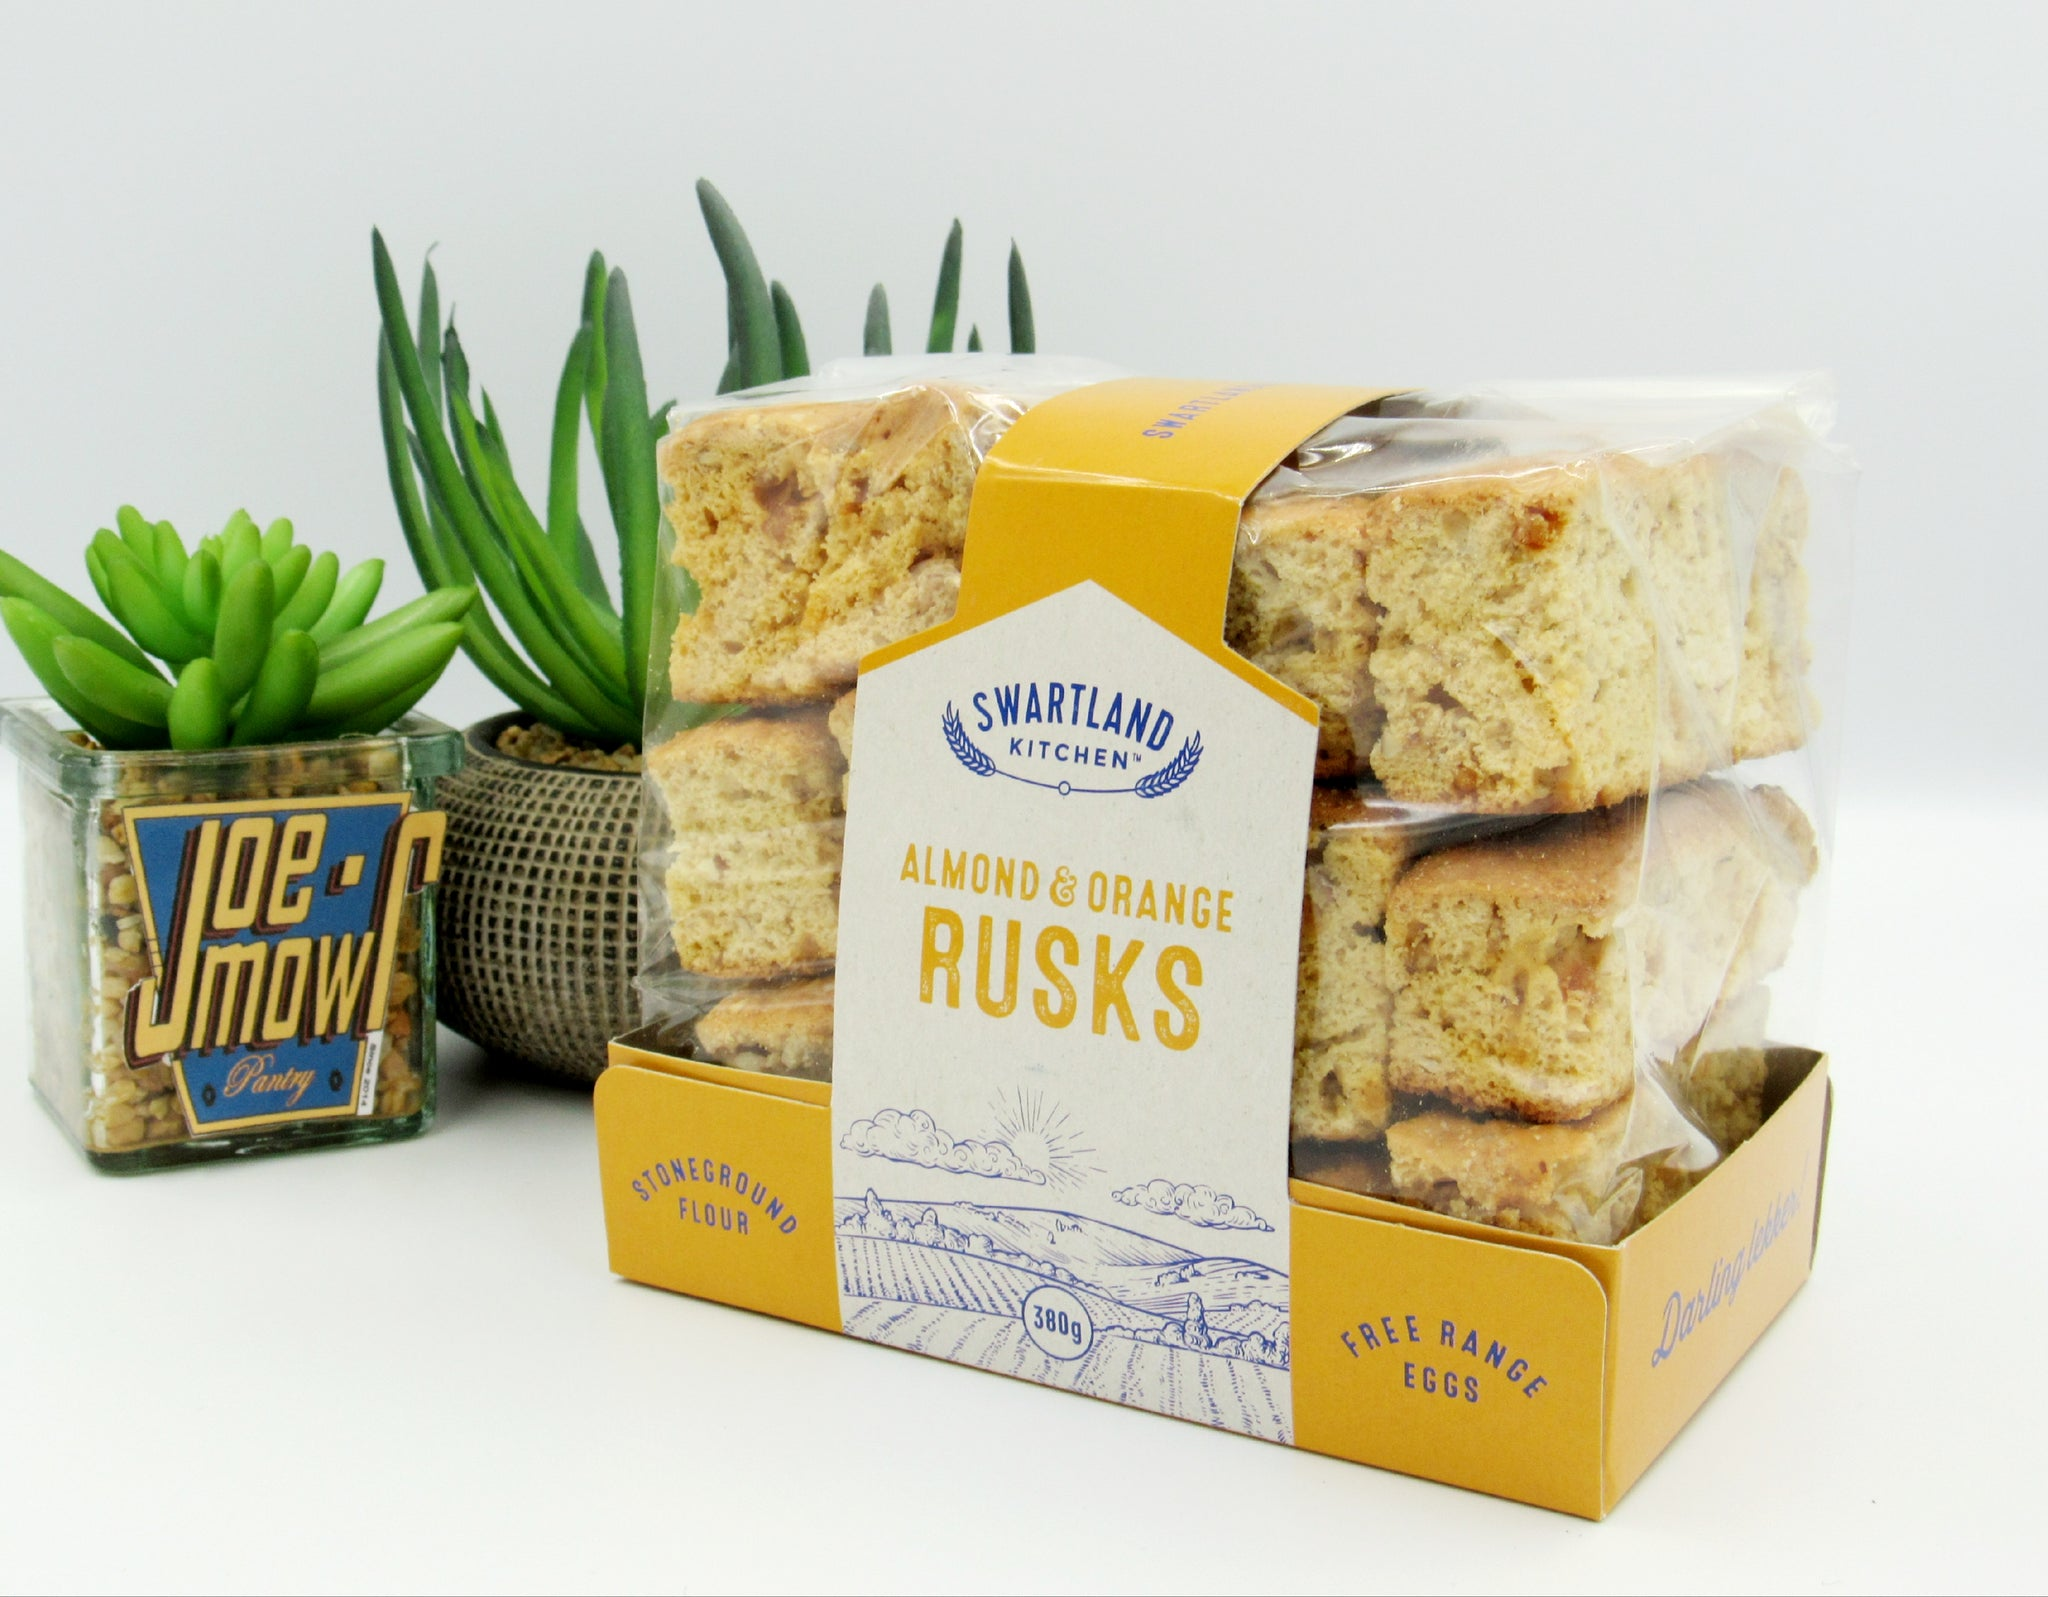 Swartland Kitchen Almond & Orange Rusks 380g